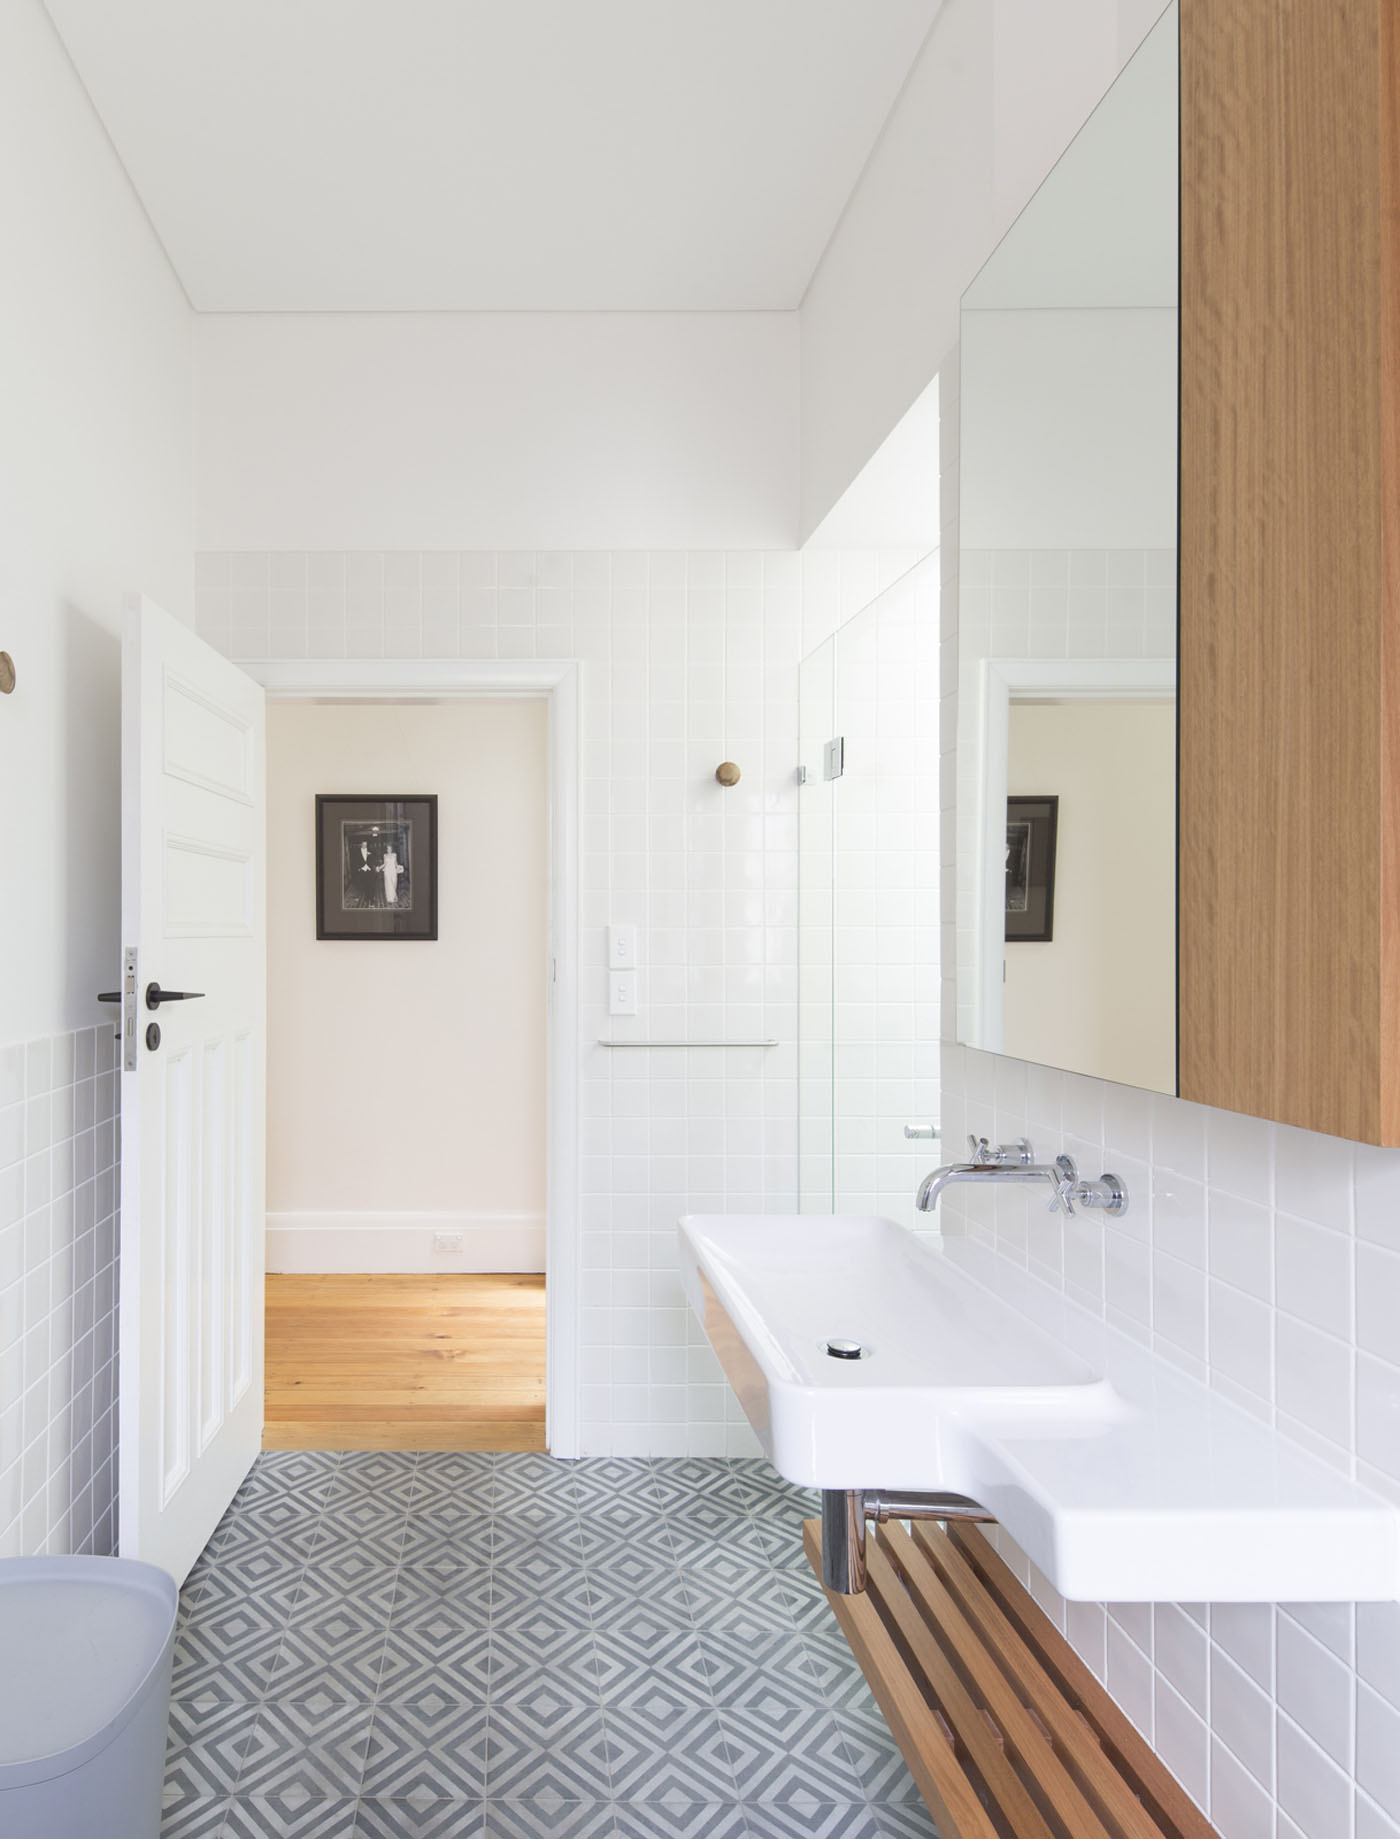 Denney House by Sam Crawford Architects, bathroom featuring popham diamond floor tiles, square gloss white tile and slatted timber shelf